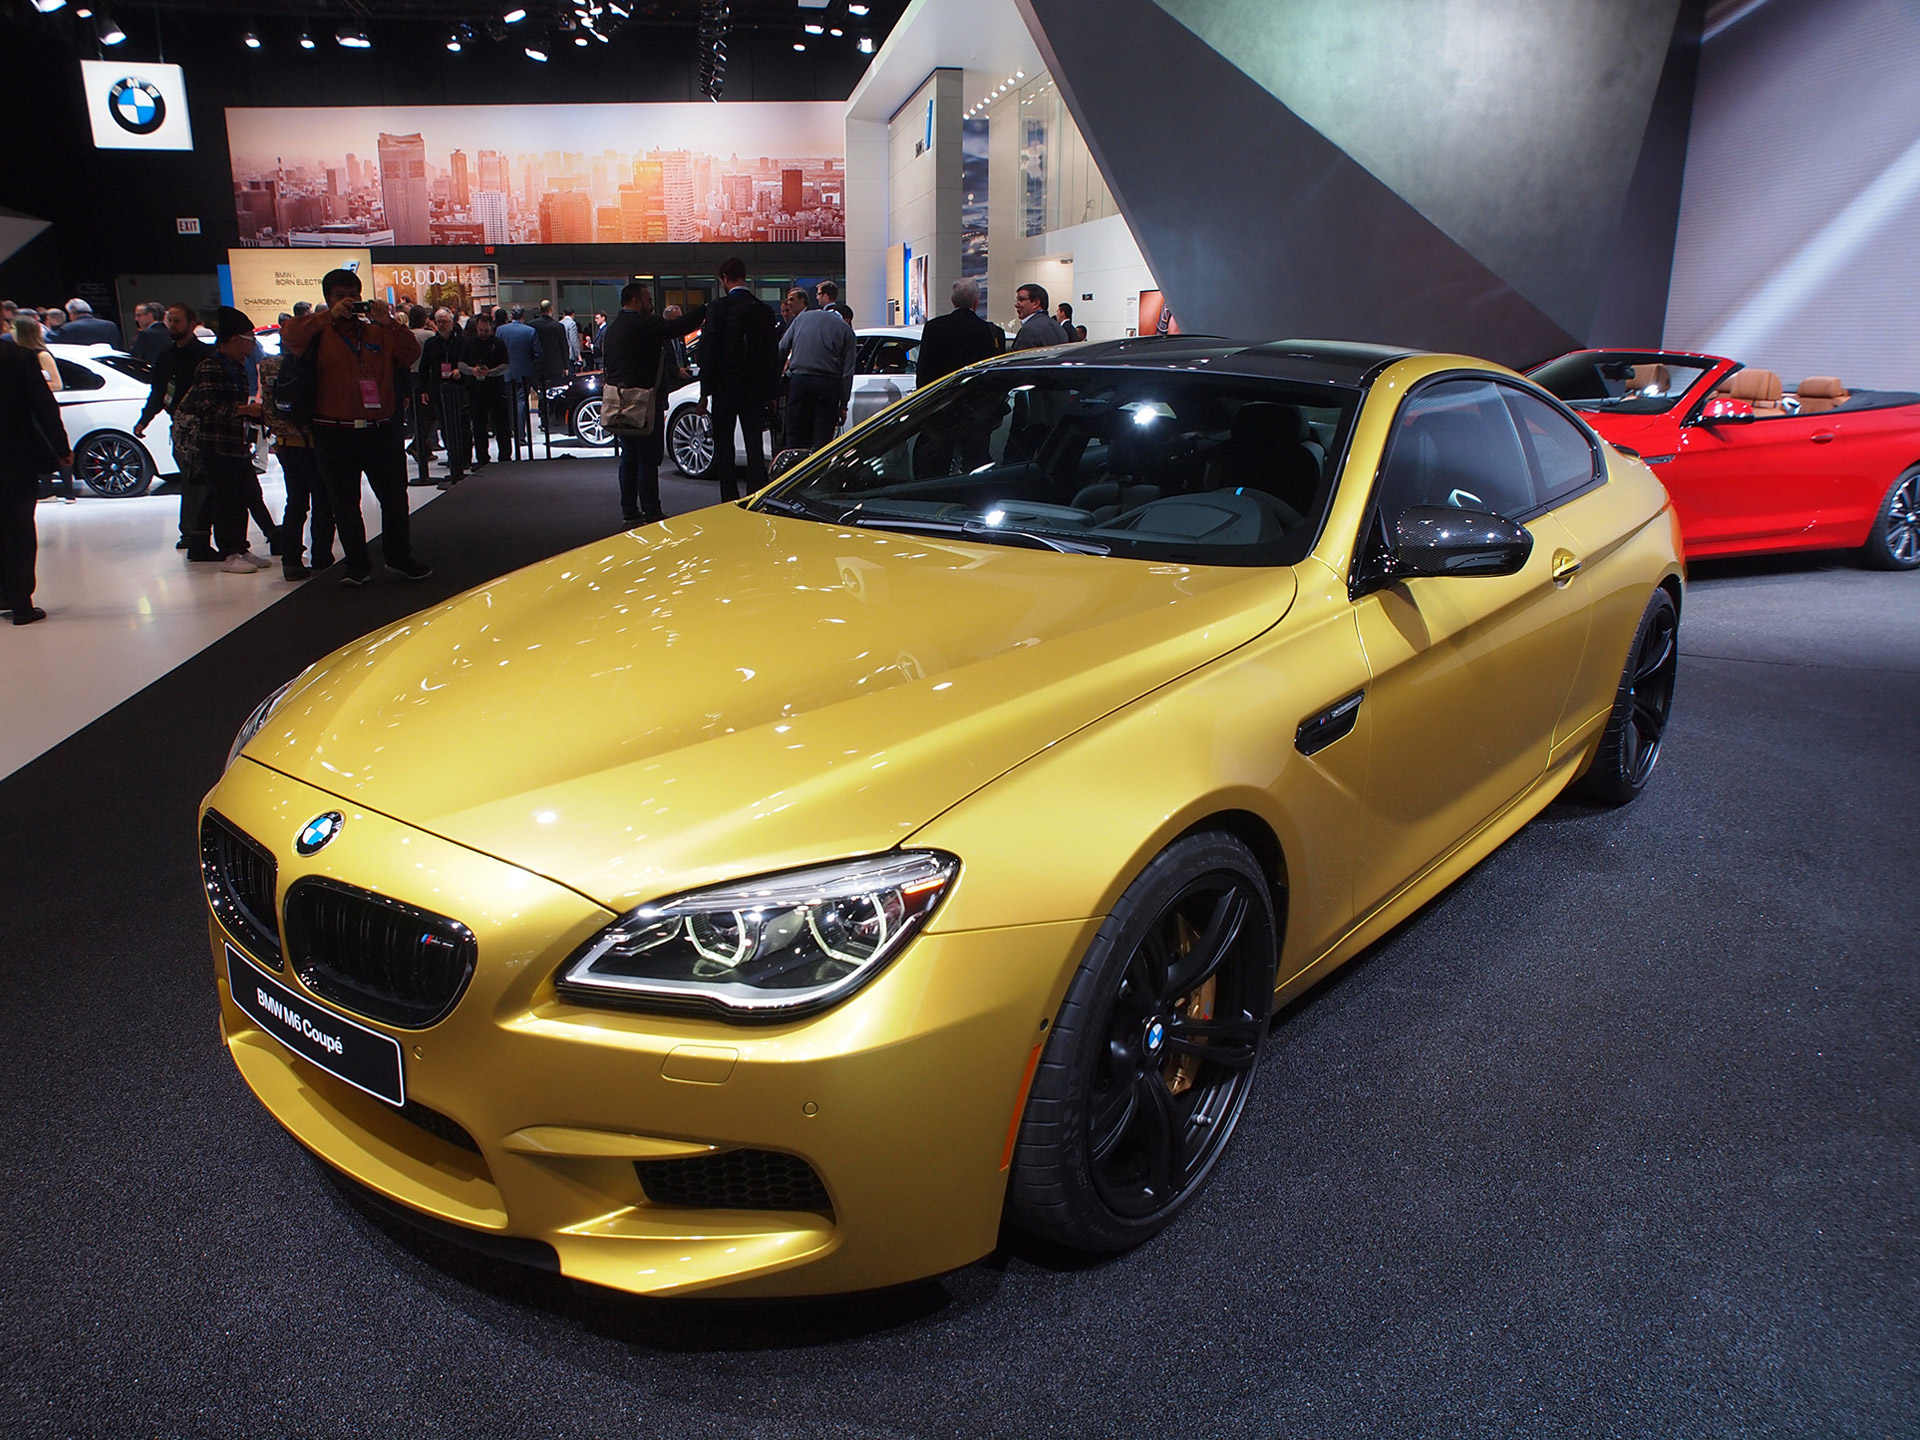 2016 Bmw M6 Review Photos Fuel Horsepowers Luxury Things